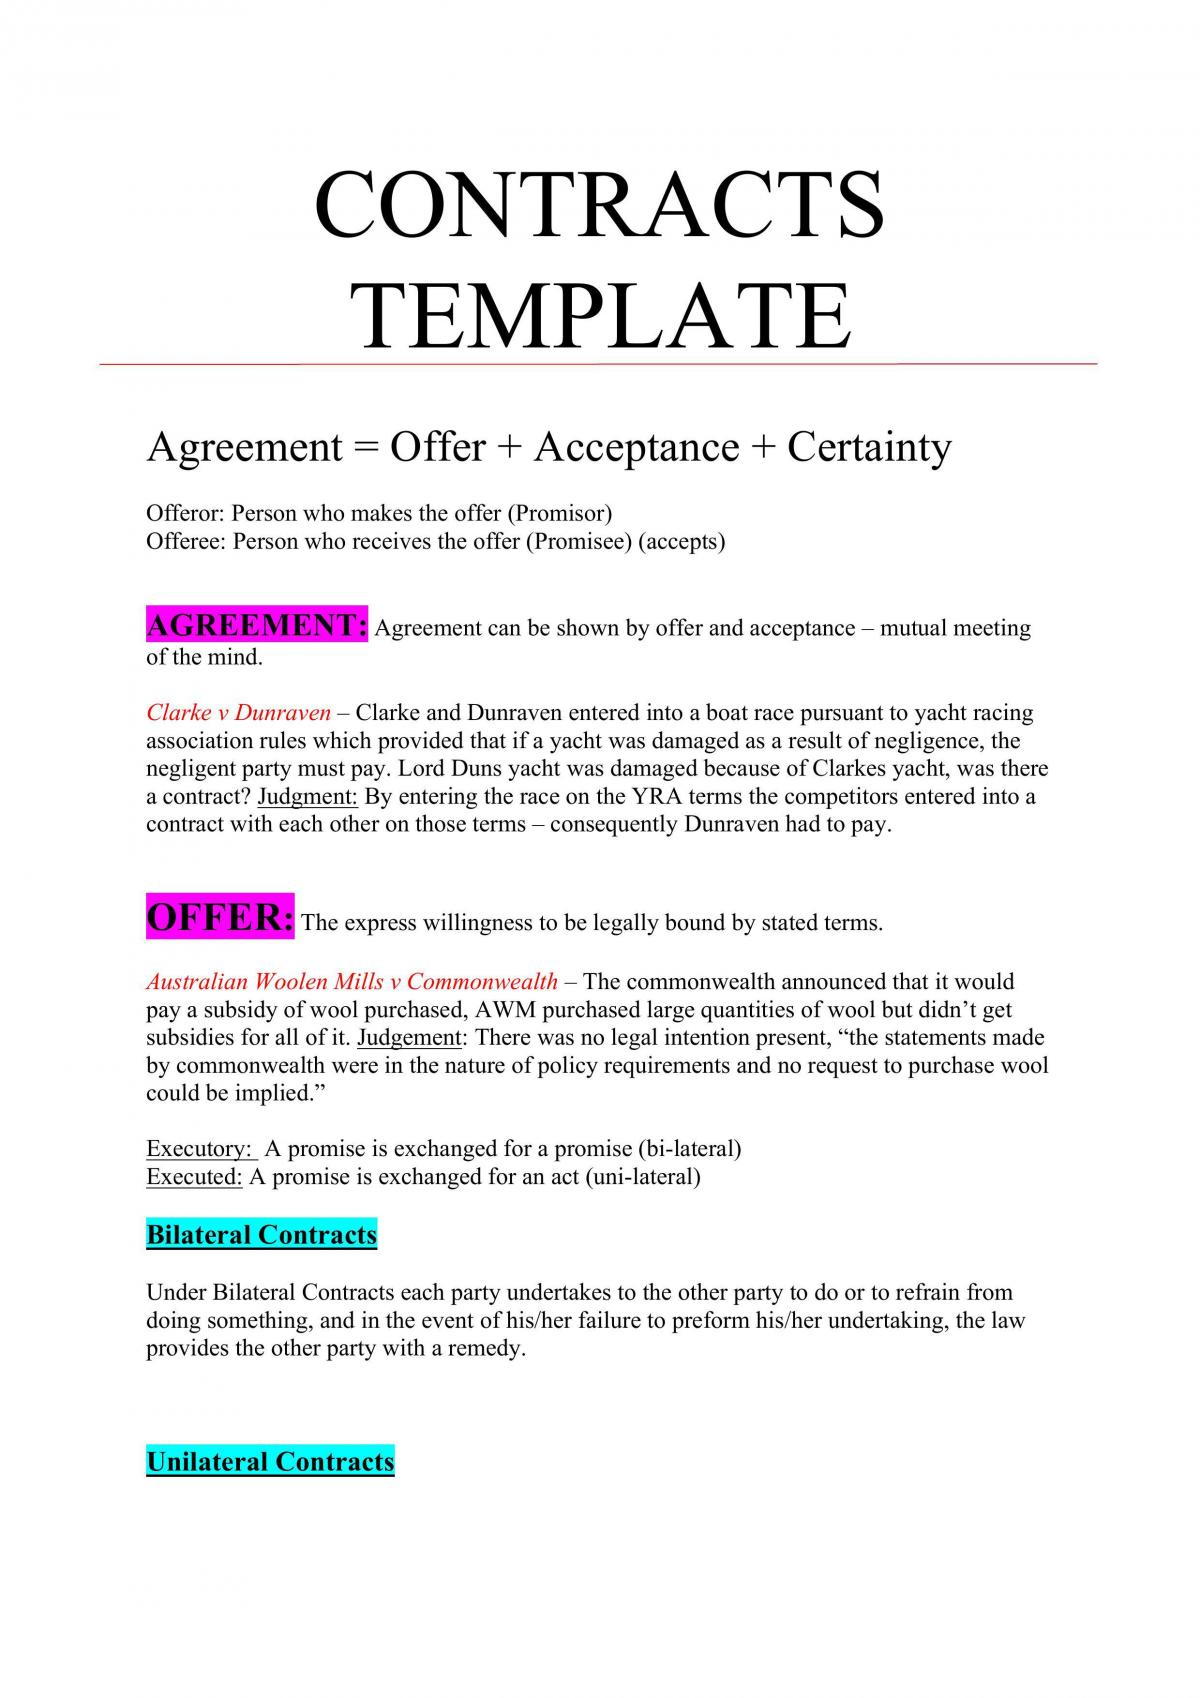 Contracts Template  - Page 1